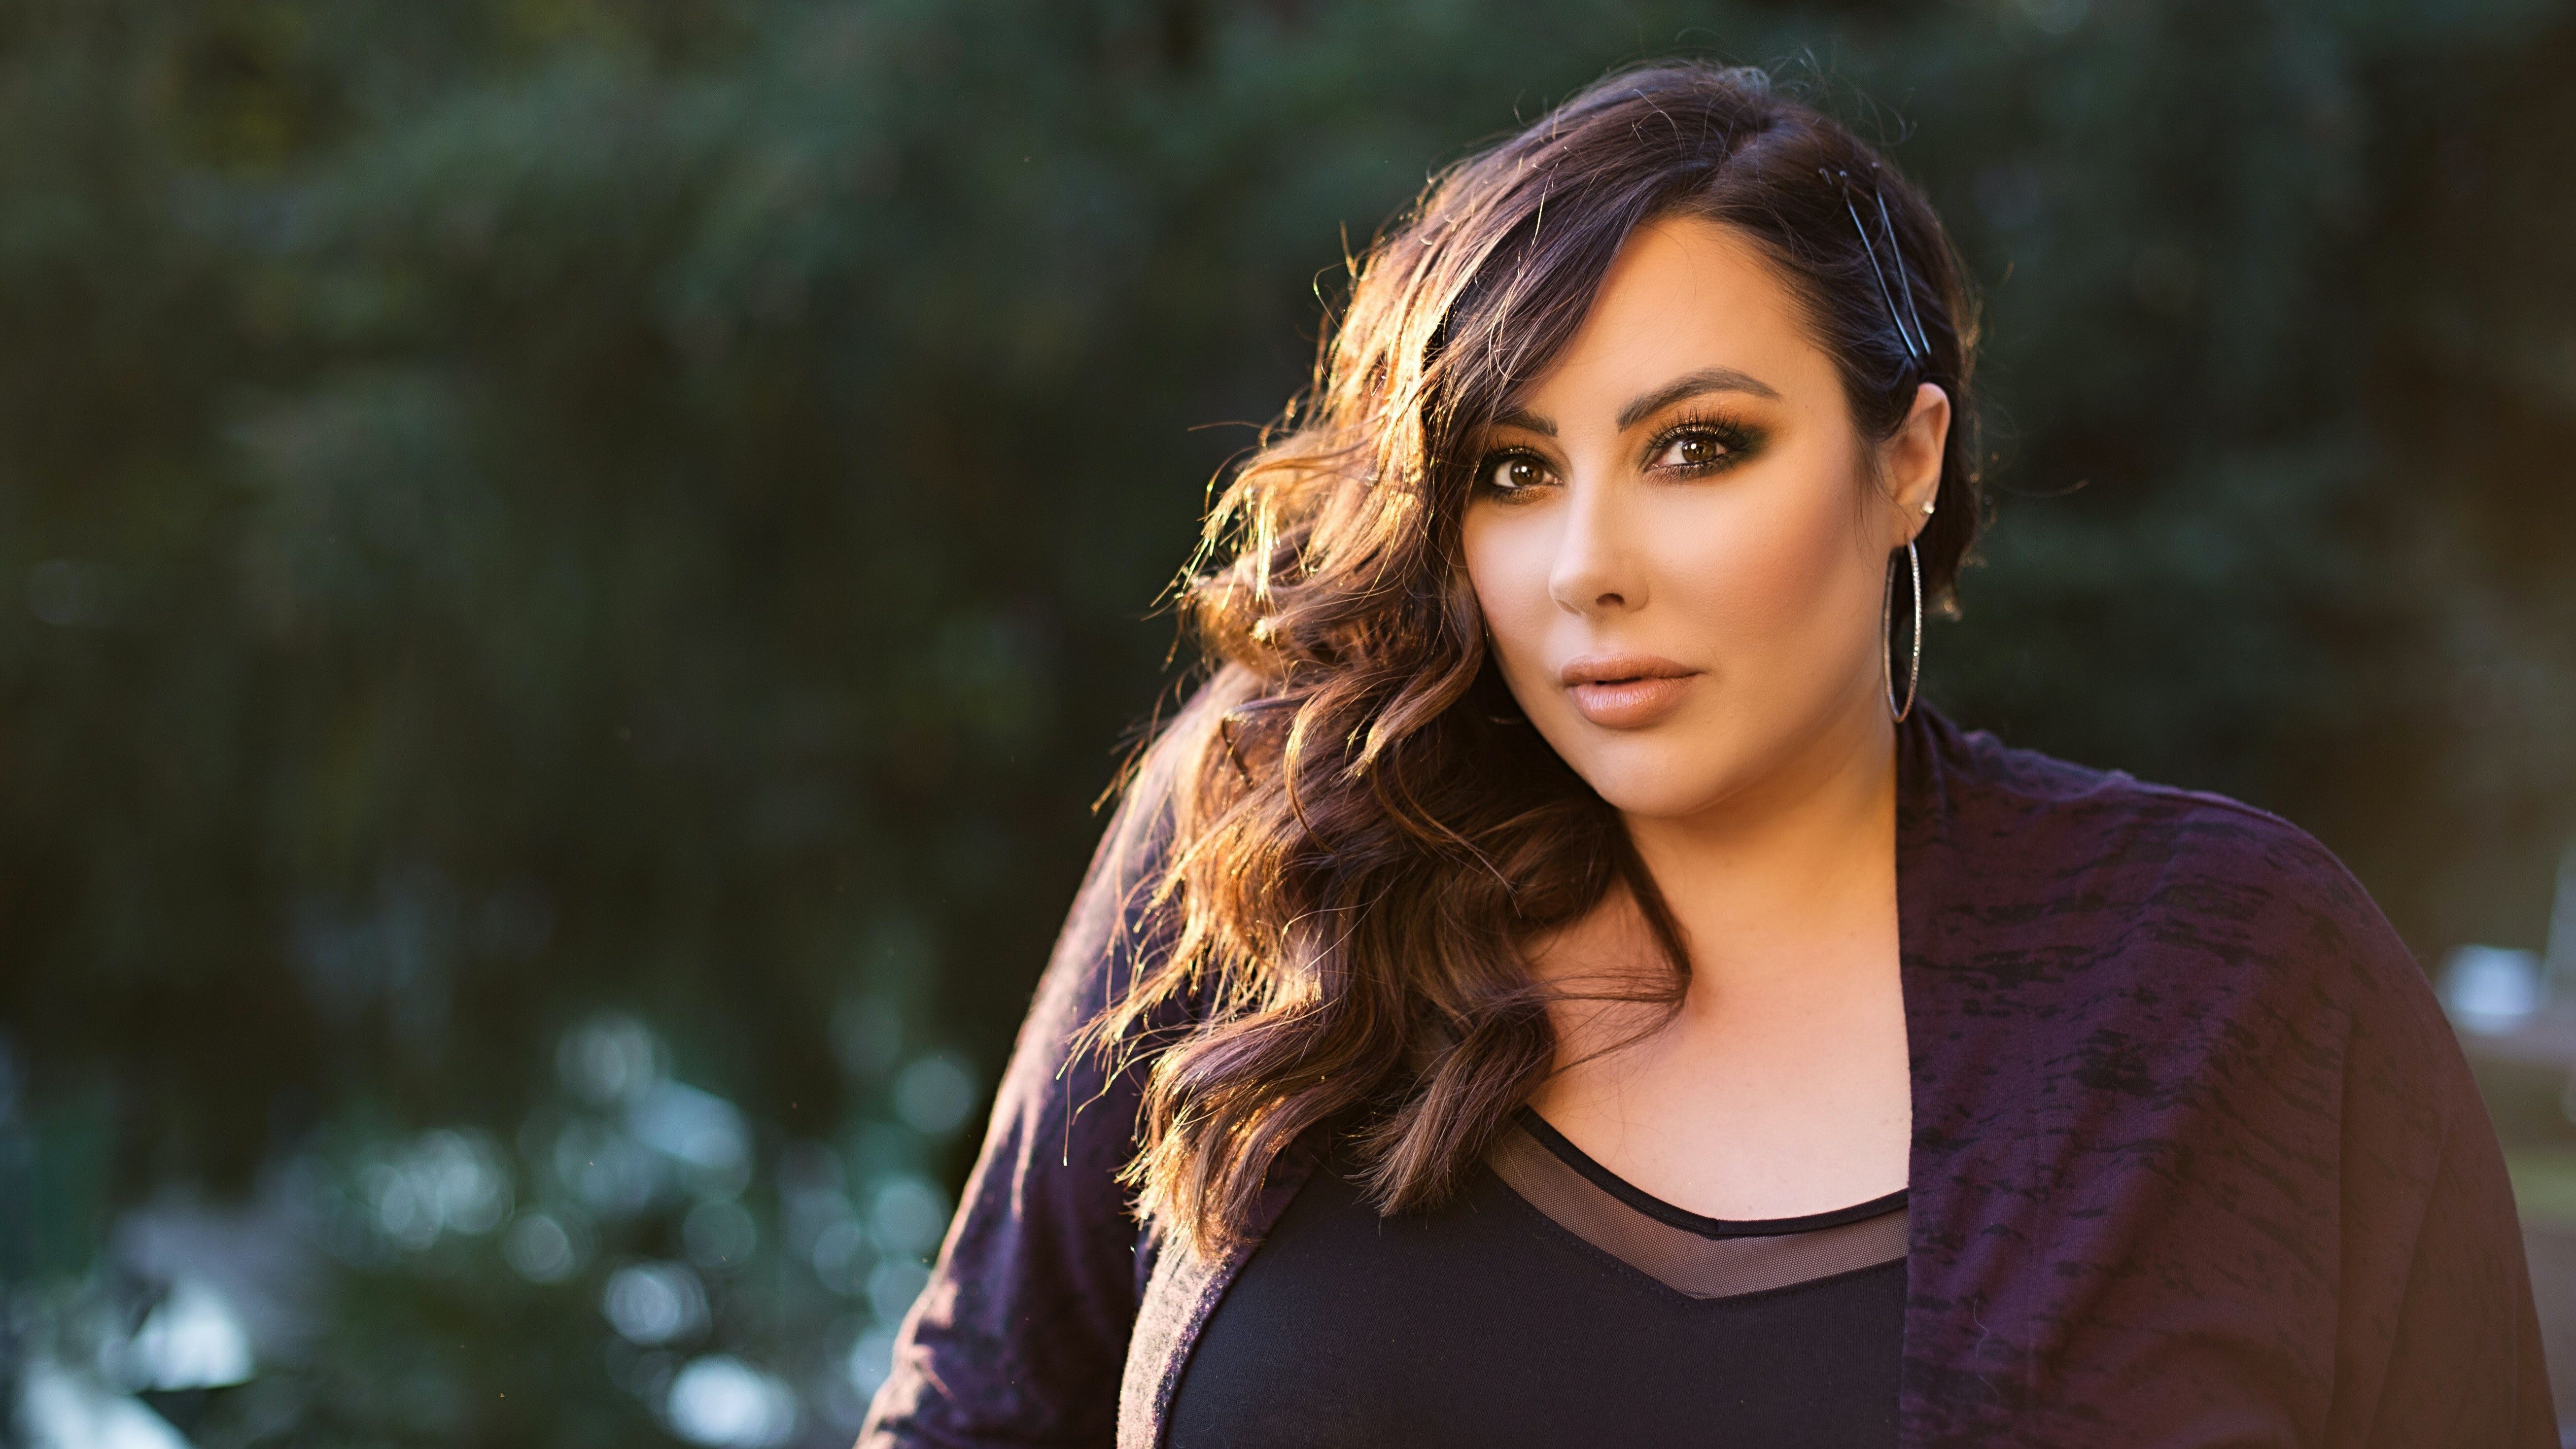 Marlena Stell on Body Positivity, Beauty, Injectables, and Why She Considers Herself a True Makeup Geek